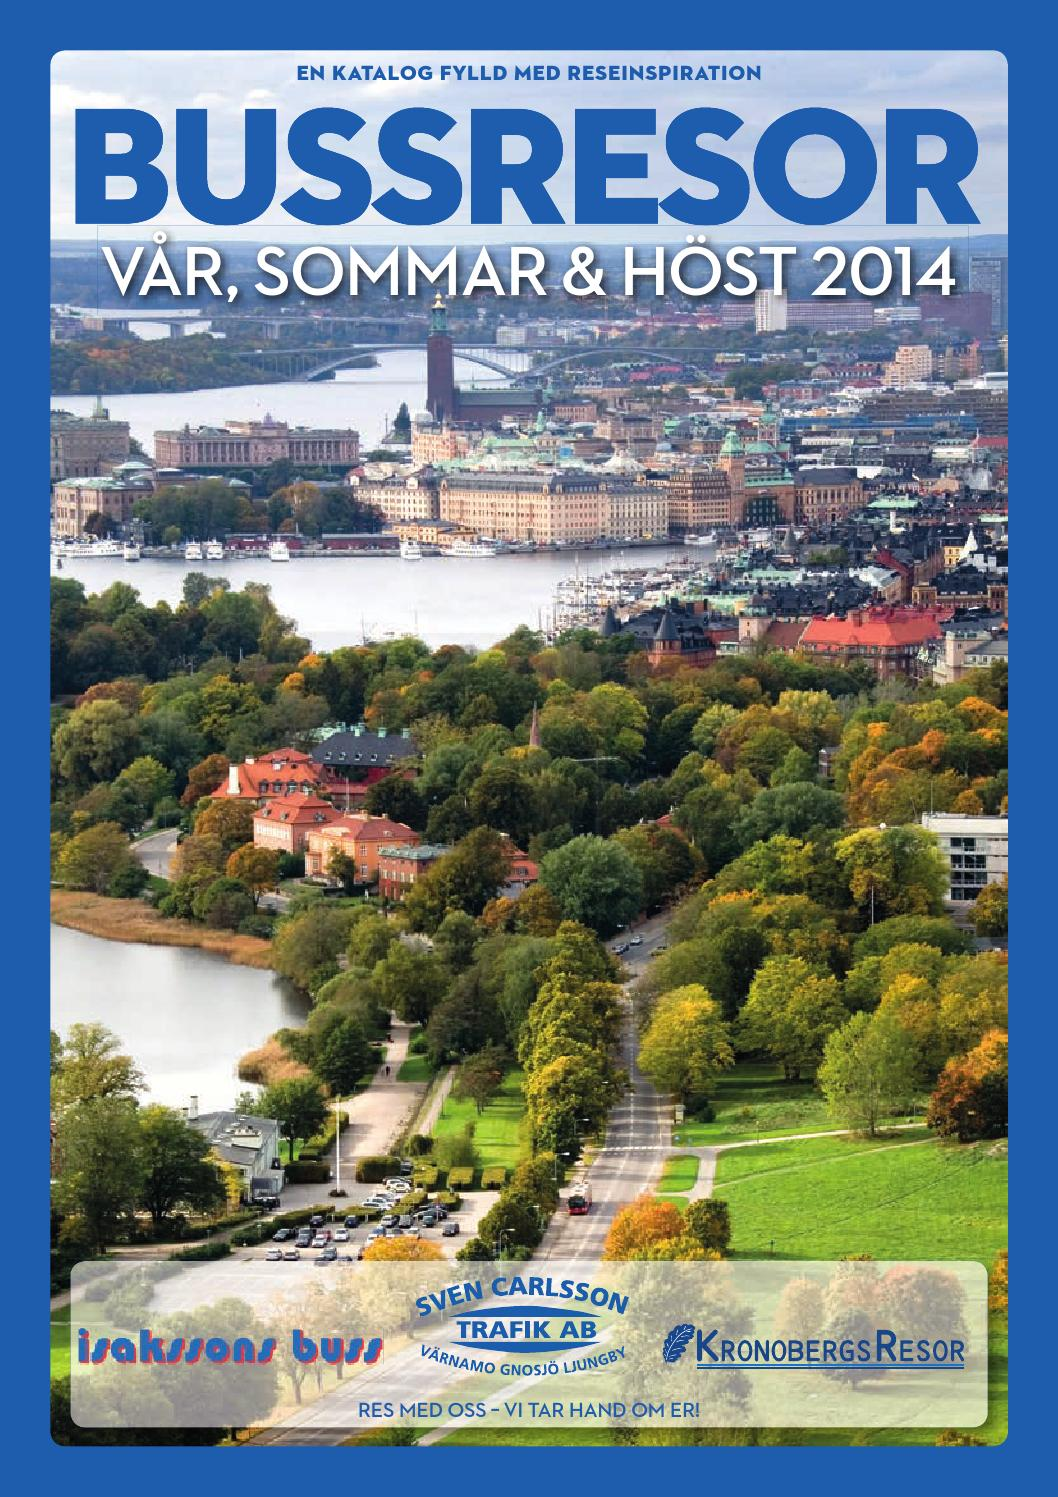 Bussresor isaksson 2014 by brun mediaproduktion ab   issuu